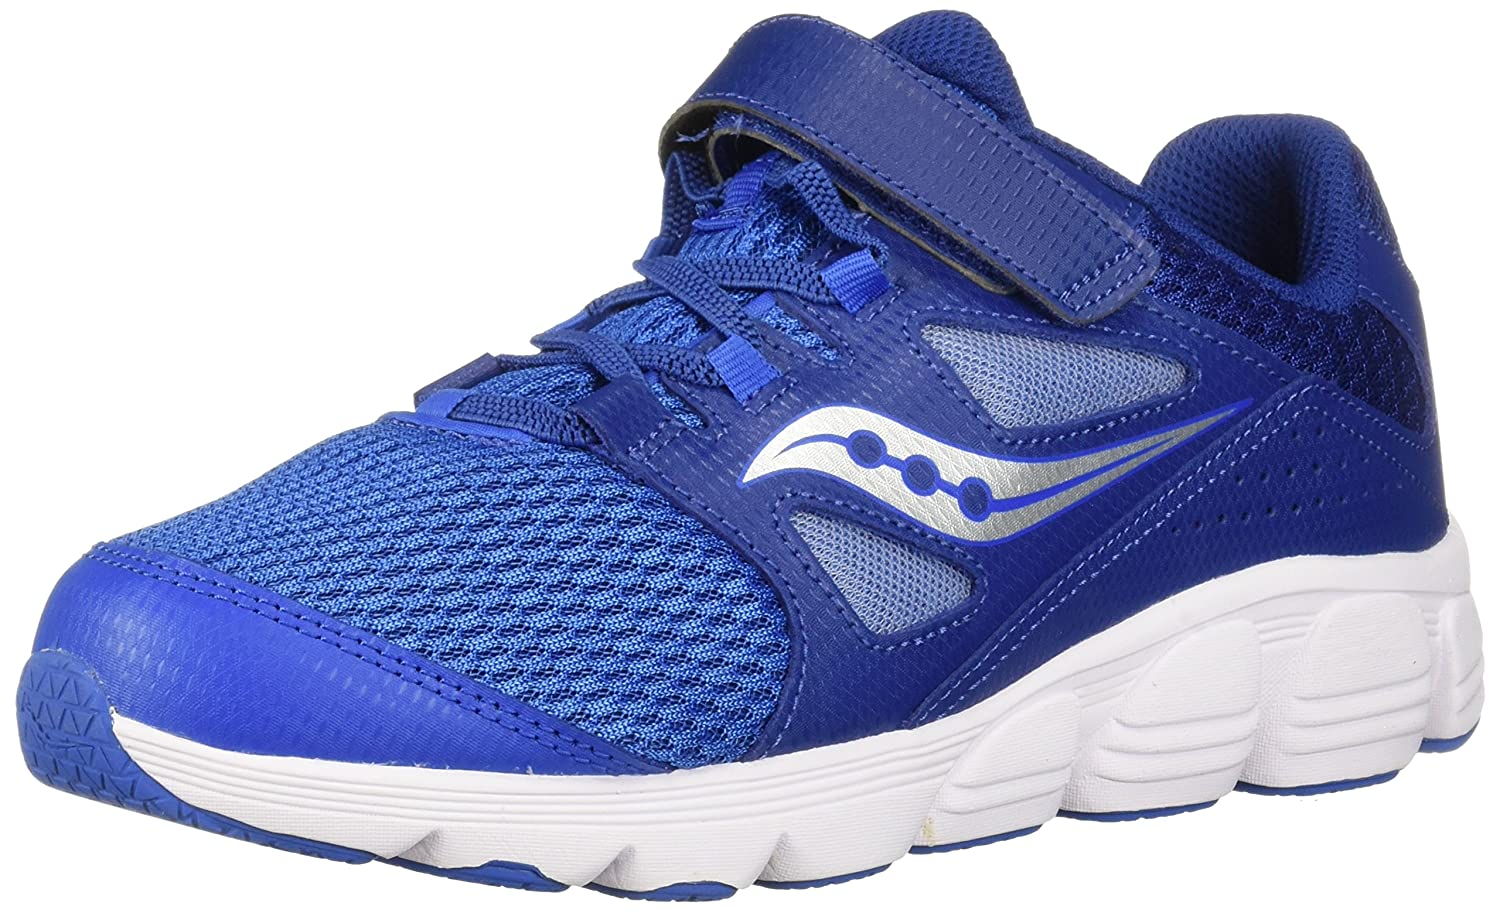 Navy blueee 13 XWide Little Kid Saucony Girl's Kotaro 4 A C Running shoes